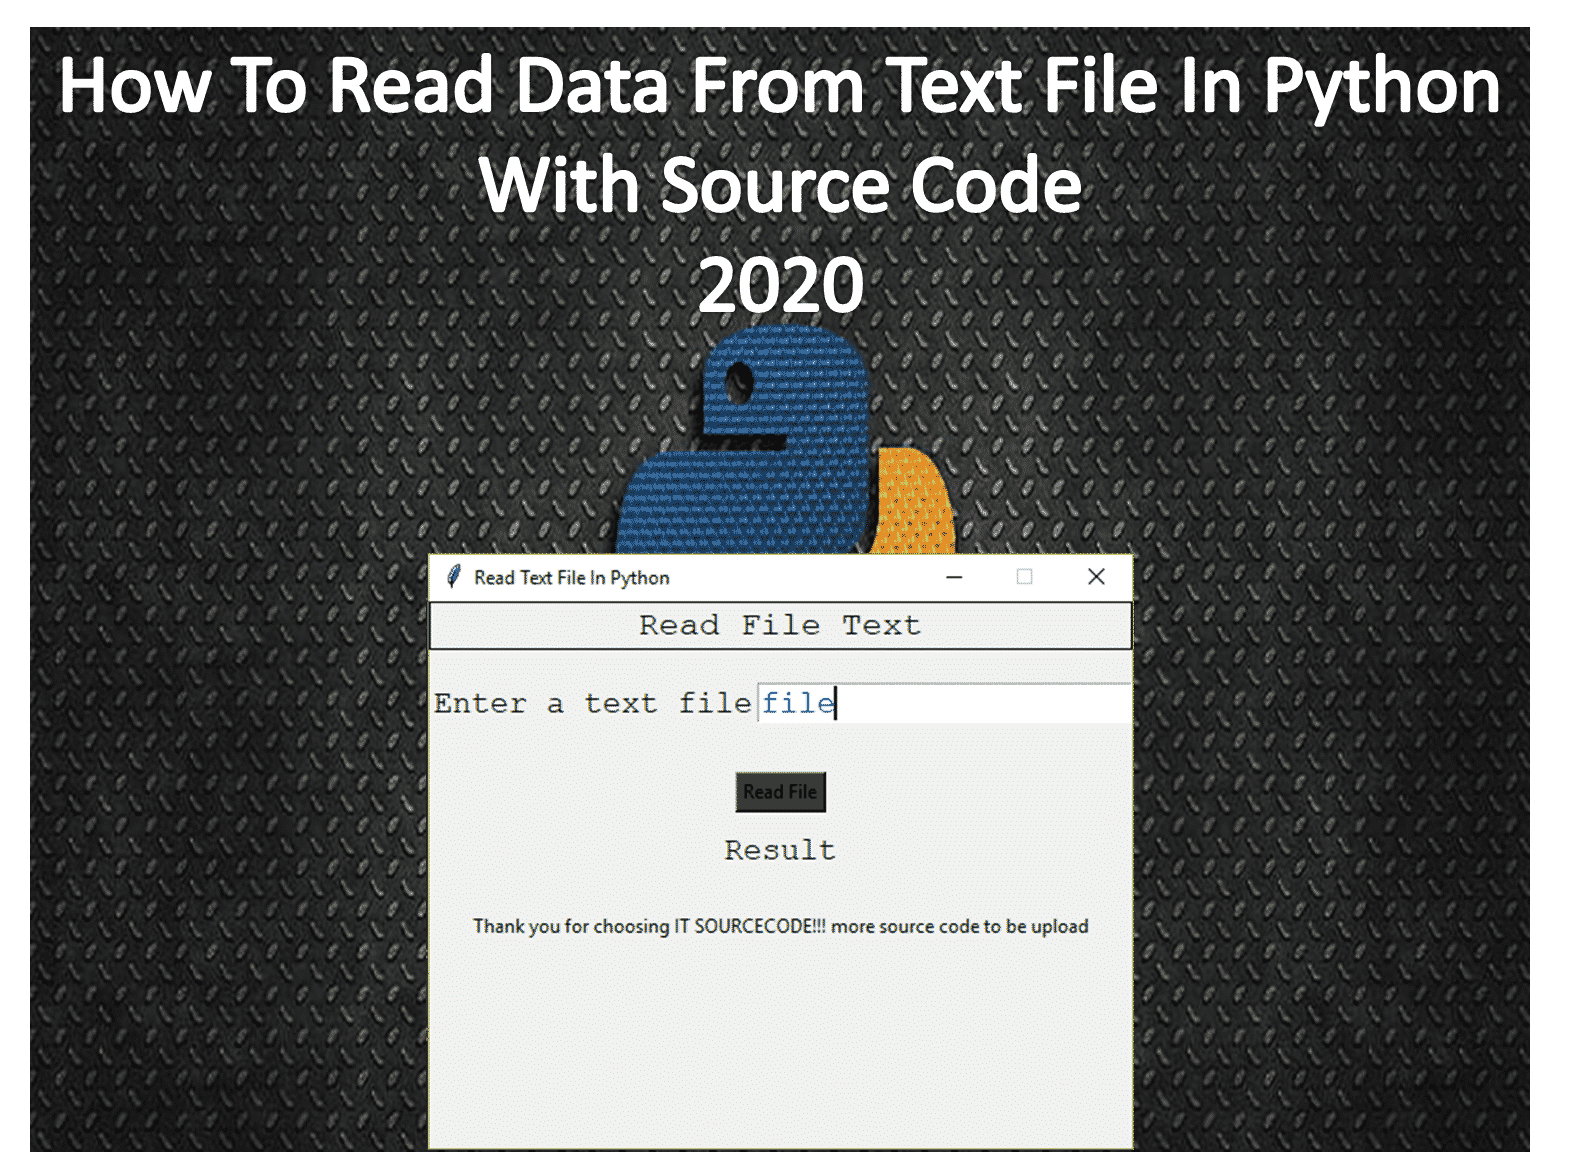 How_To_Read_Data_From_Text_File_In_Python_With_Source_Code